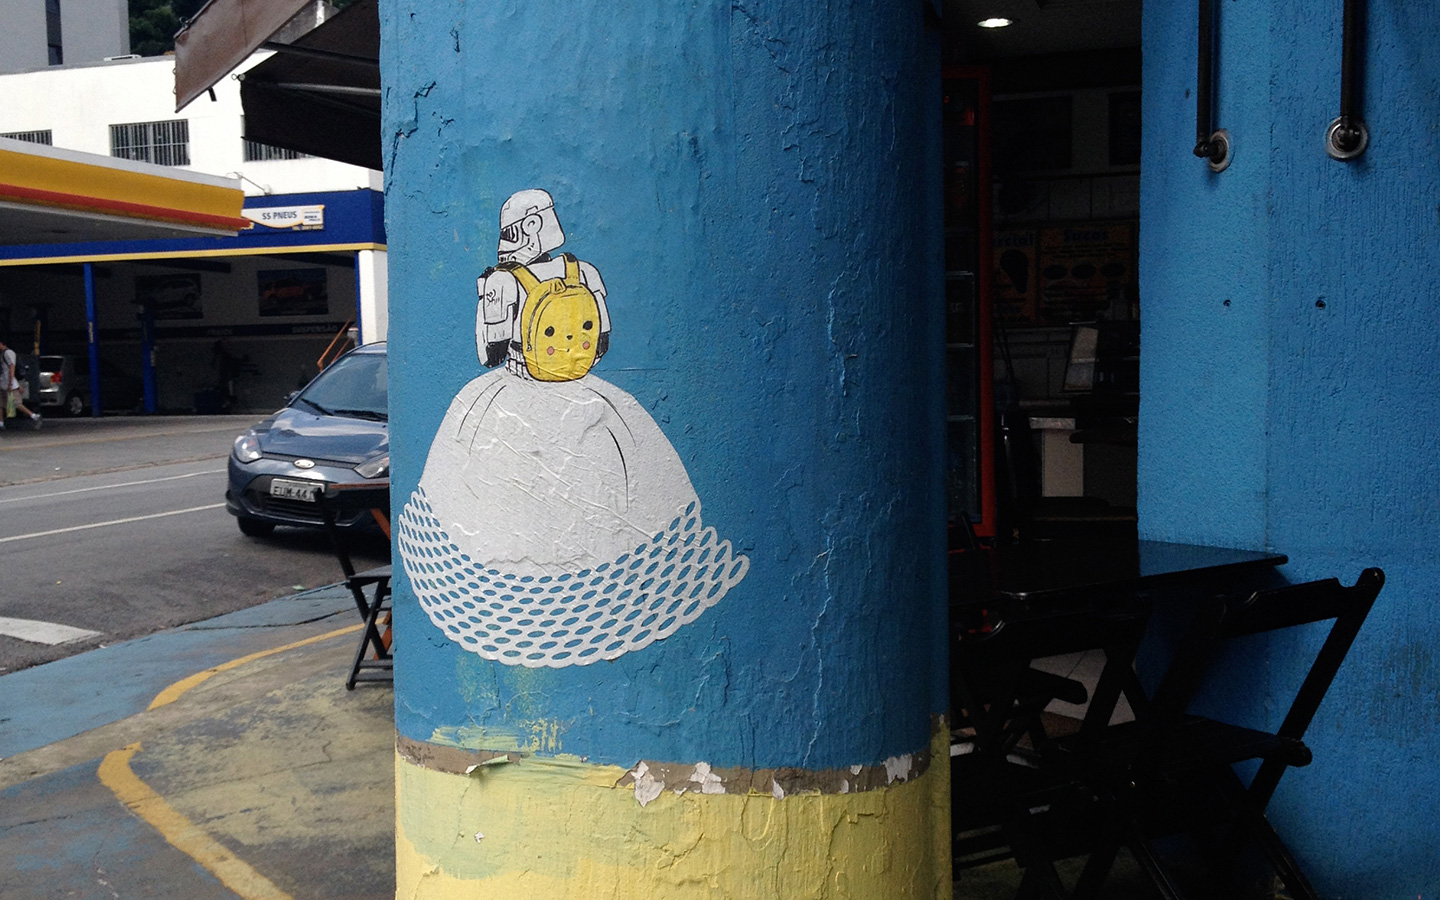 street_art_andre_levy_zhion_stormtroopers_luminous_beings_sao_paulo_8.jpg